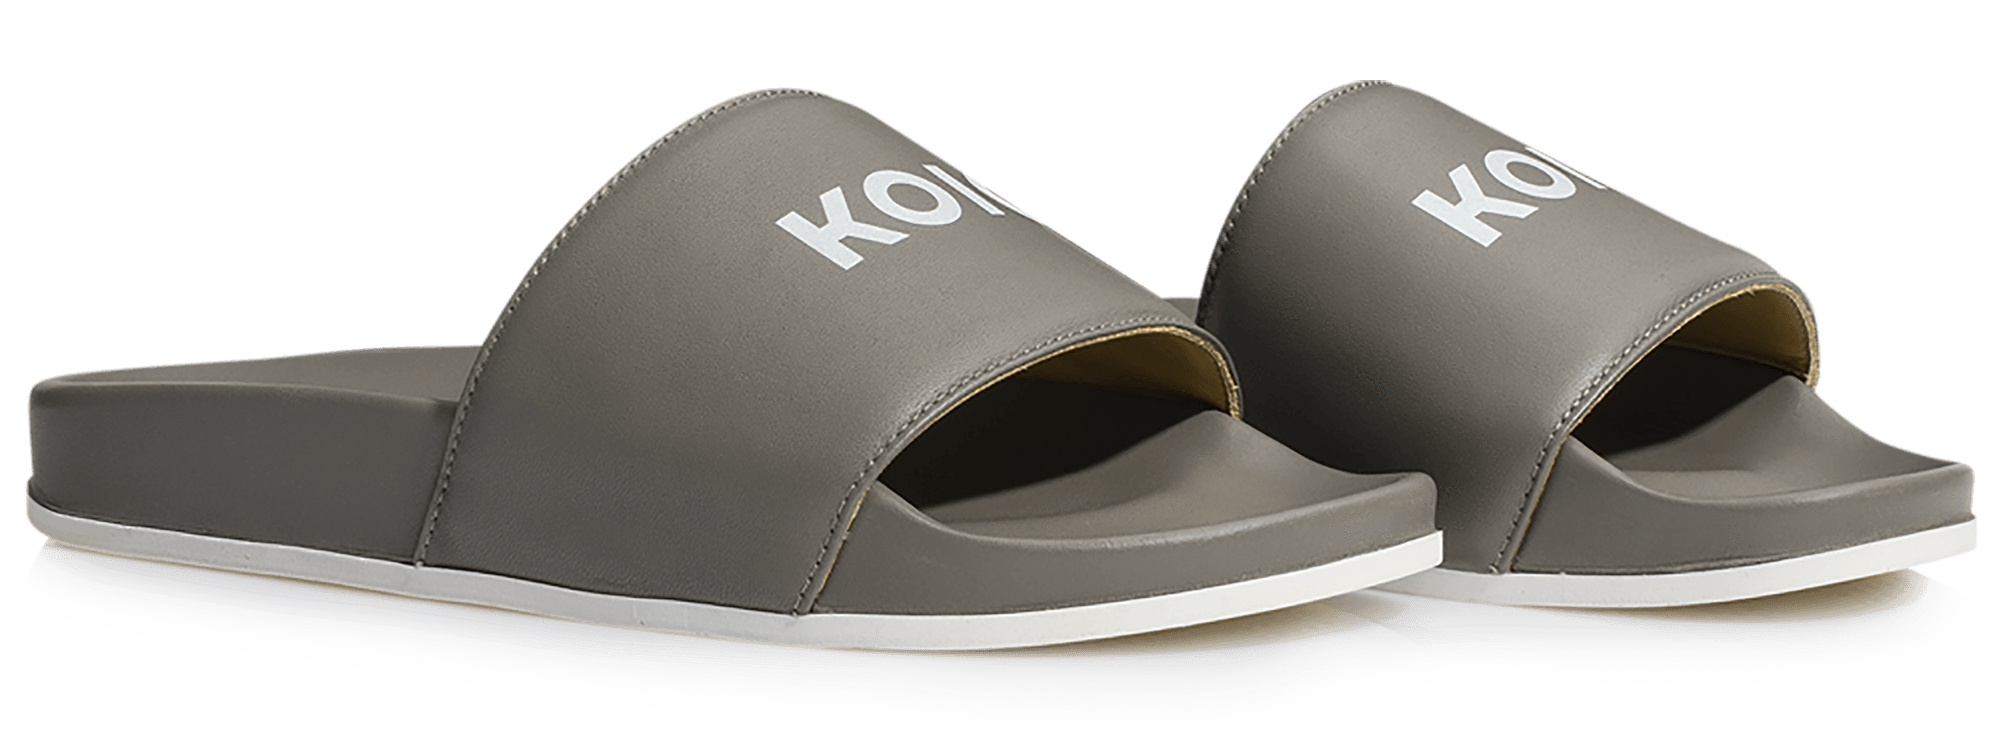 KOIO Women's Slip-on Leather Sandals in